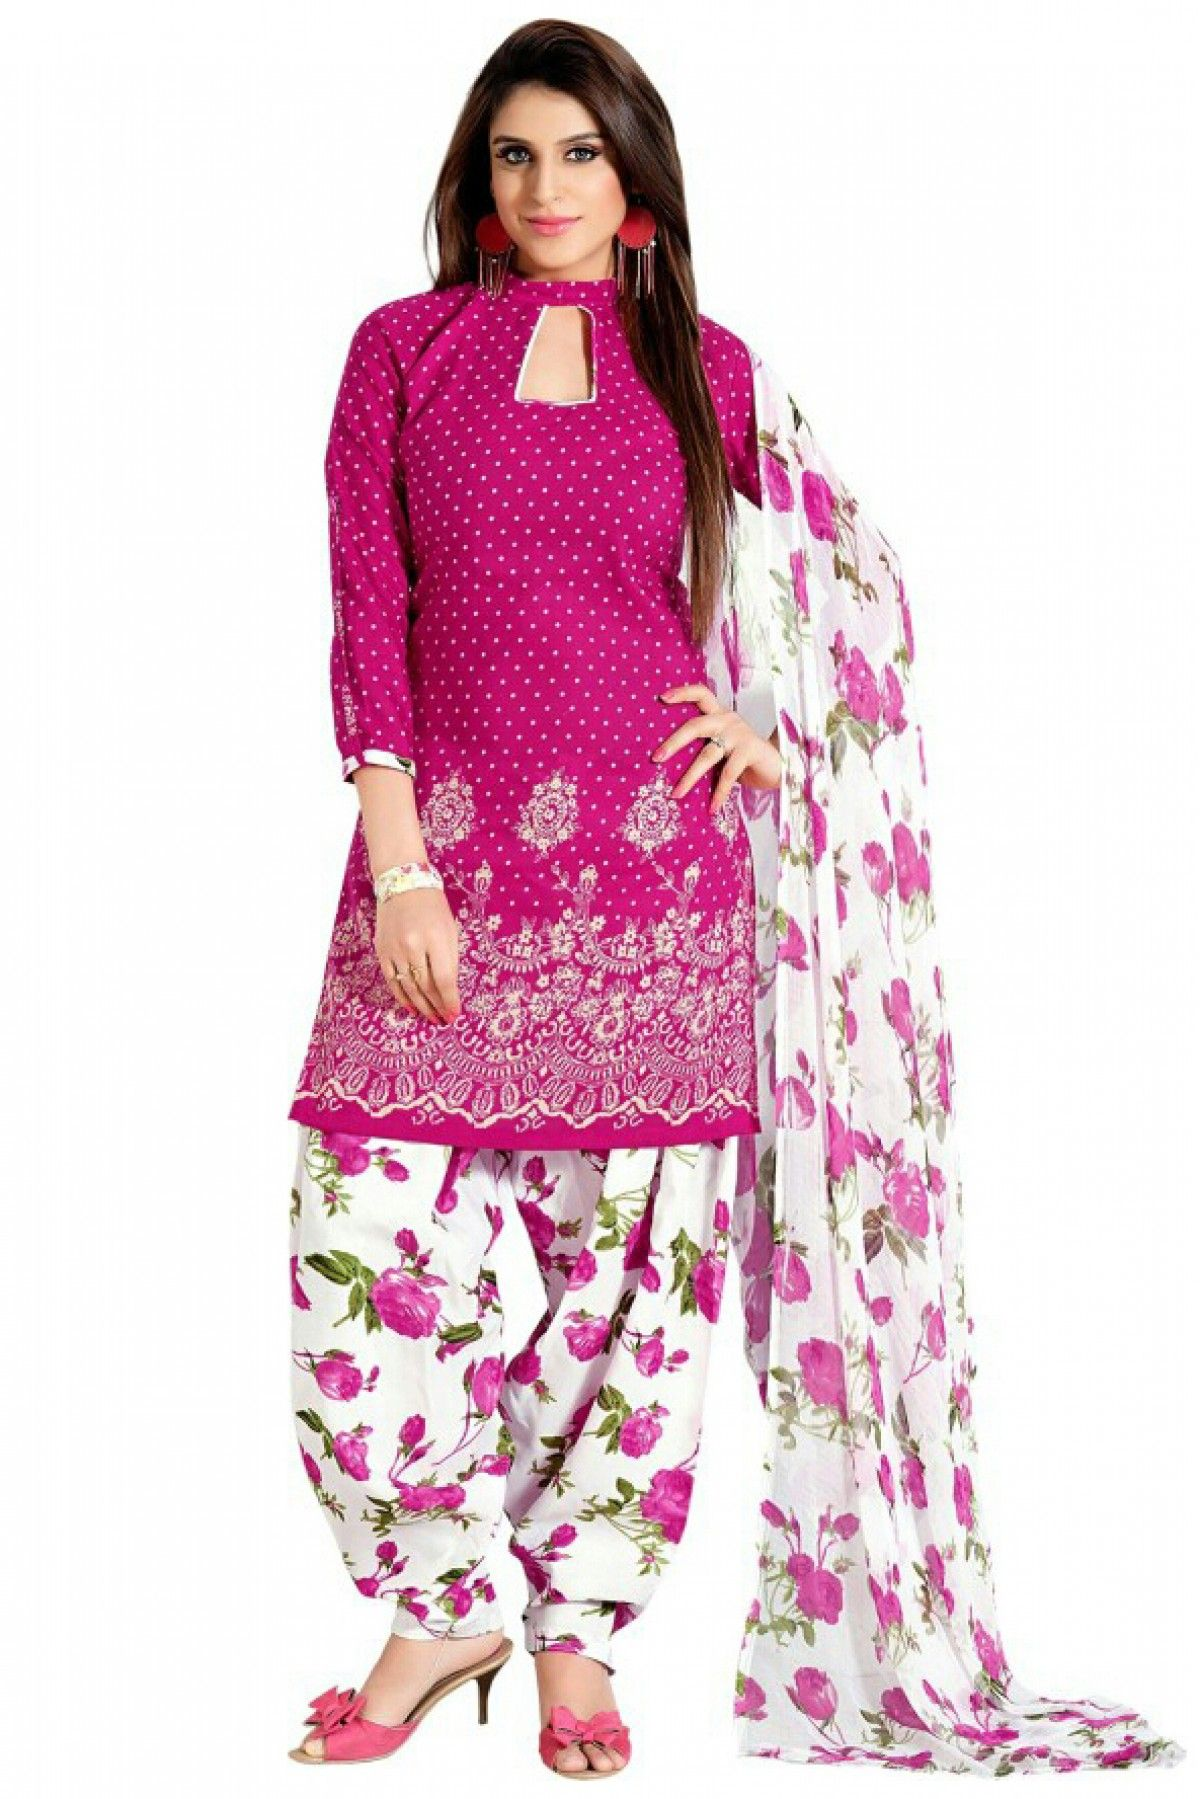 Cotton Party Wear Patiala Suit In Pink Colour It Comes With Matching Tta And Bottom Is Crfated Embroidery Lace Work Can Be Sched Upto 42